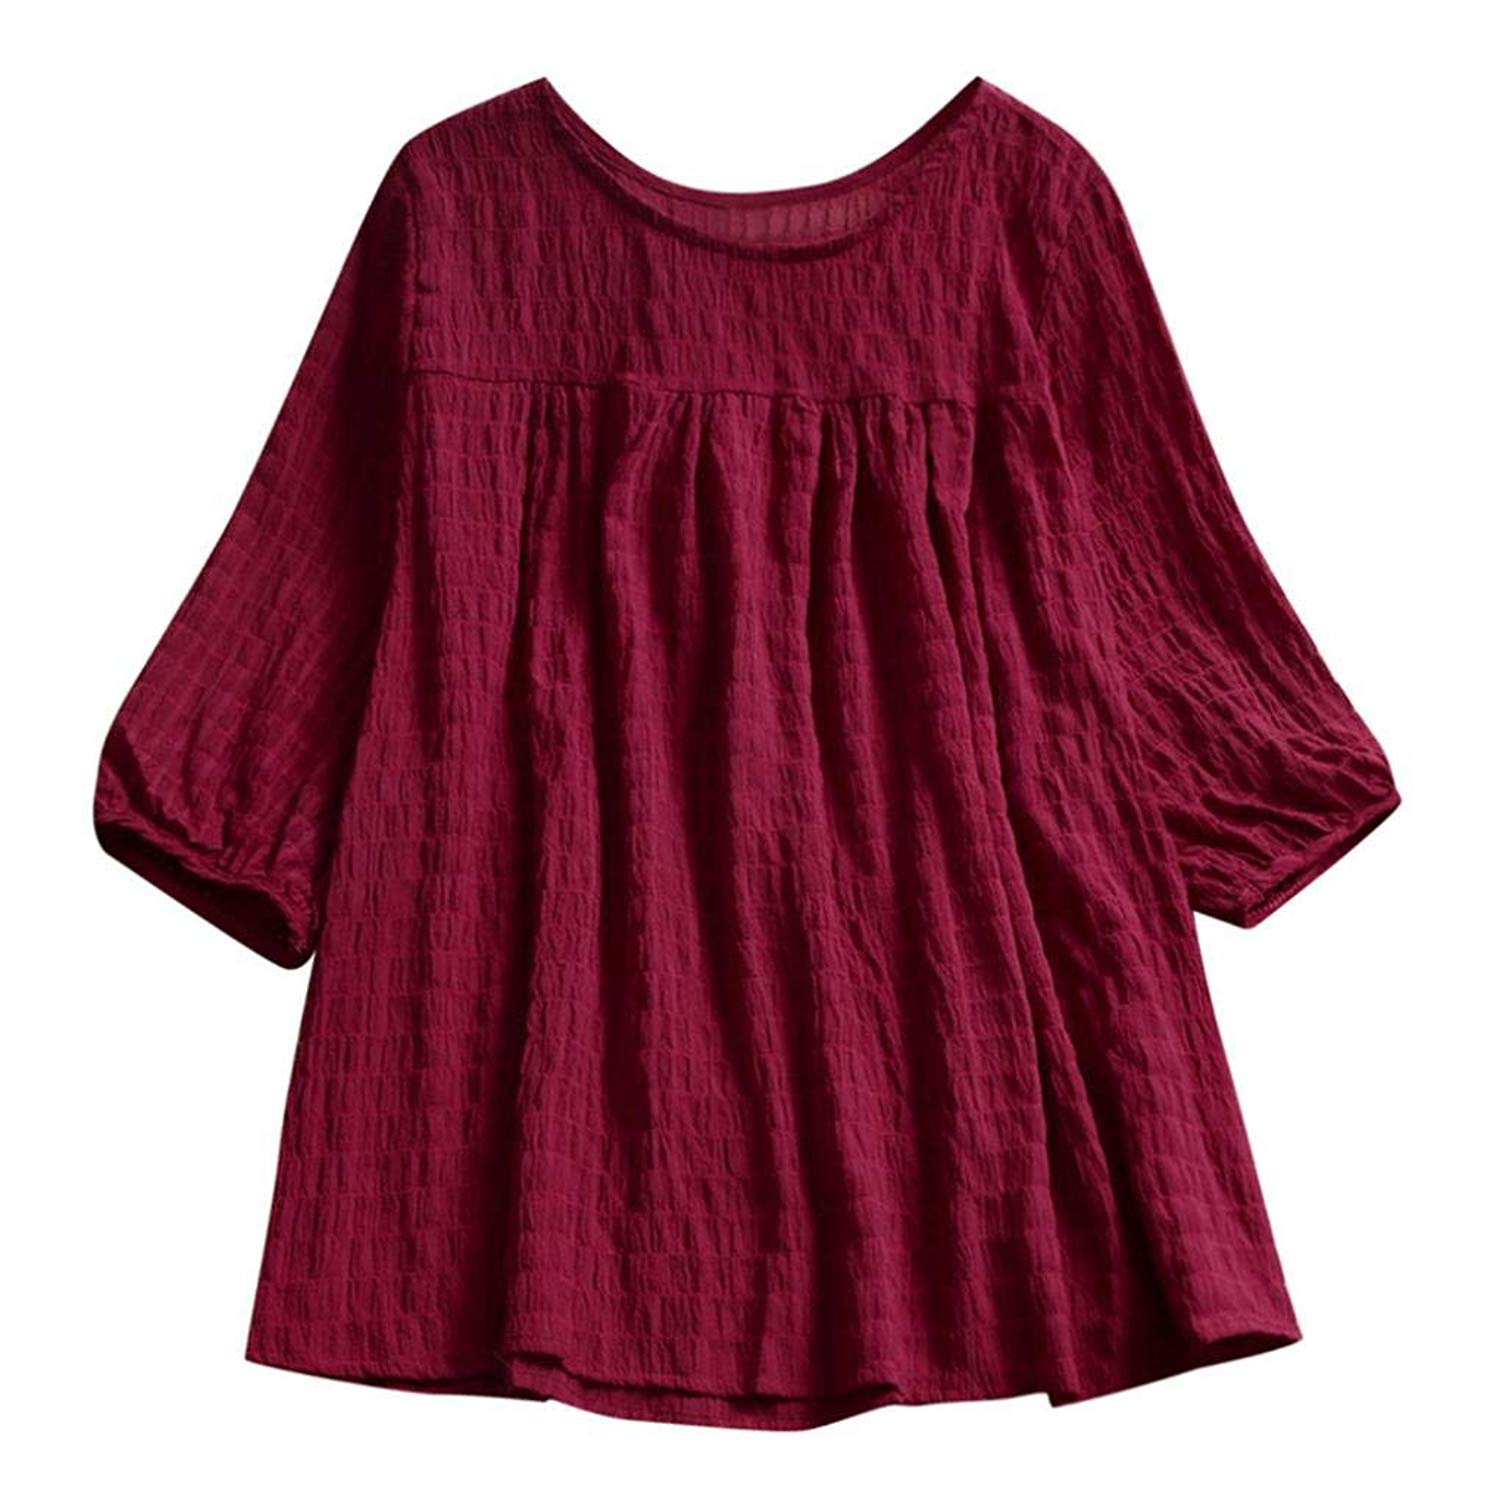 Clearance Women Tops Shirts Plus Size,Casual Half Sleeve Crewneck Loose Tops Blouse Pullover